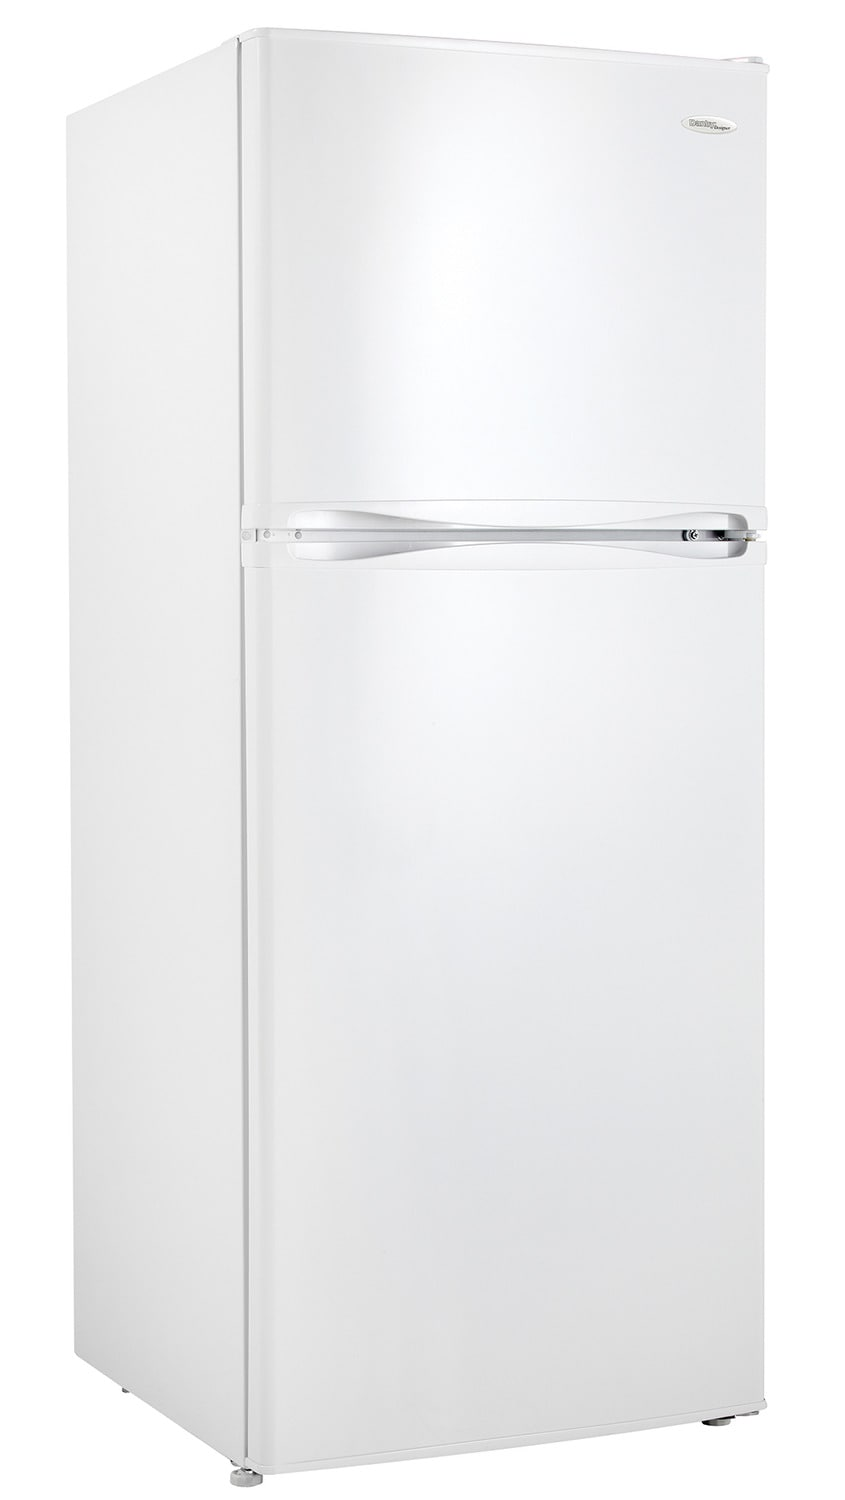 Danby White Top-Freezer Refrigerator (12.3 Cu. Ft.) - DFF123C2WDD